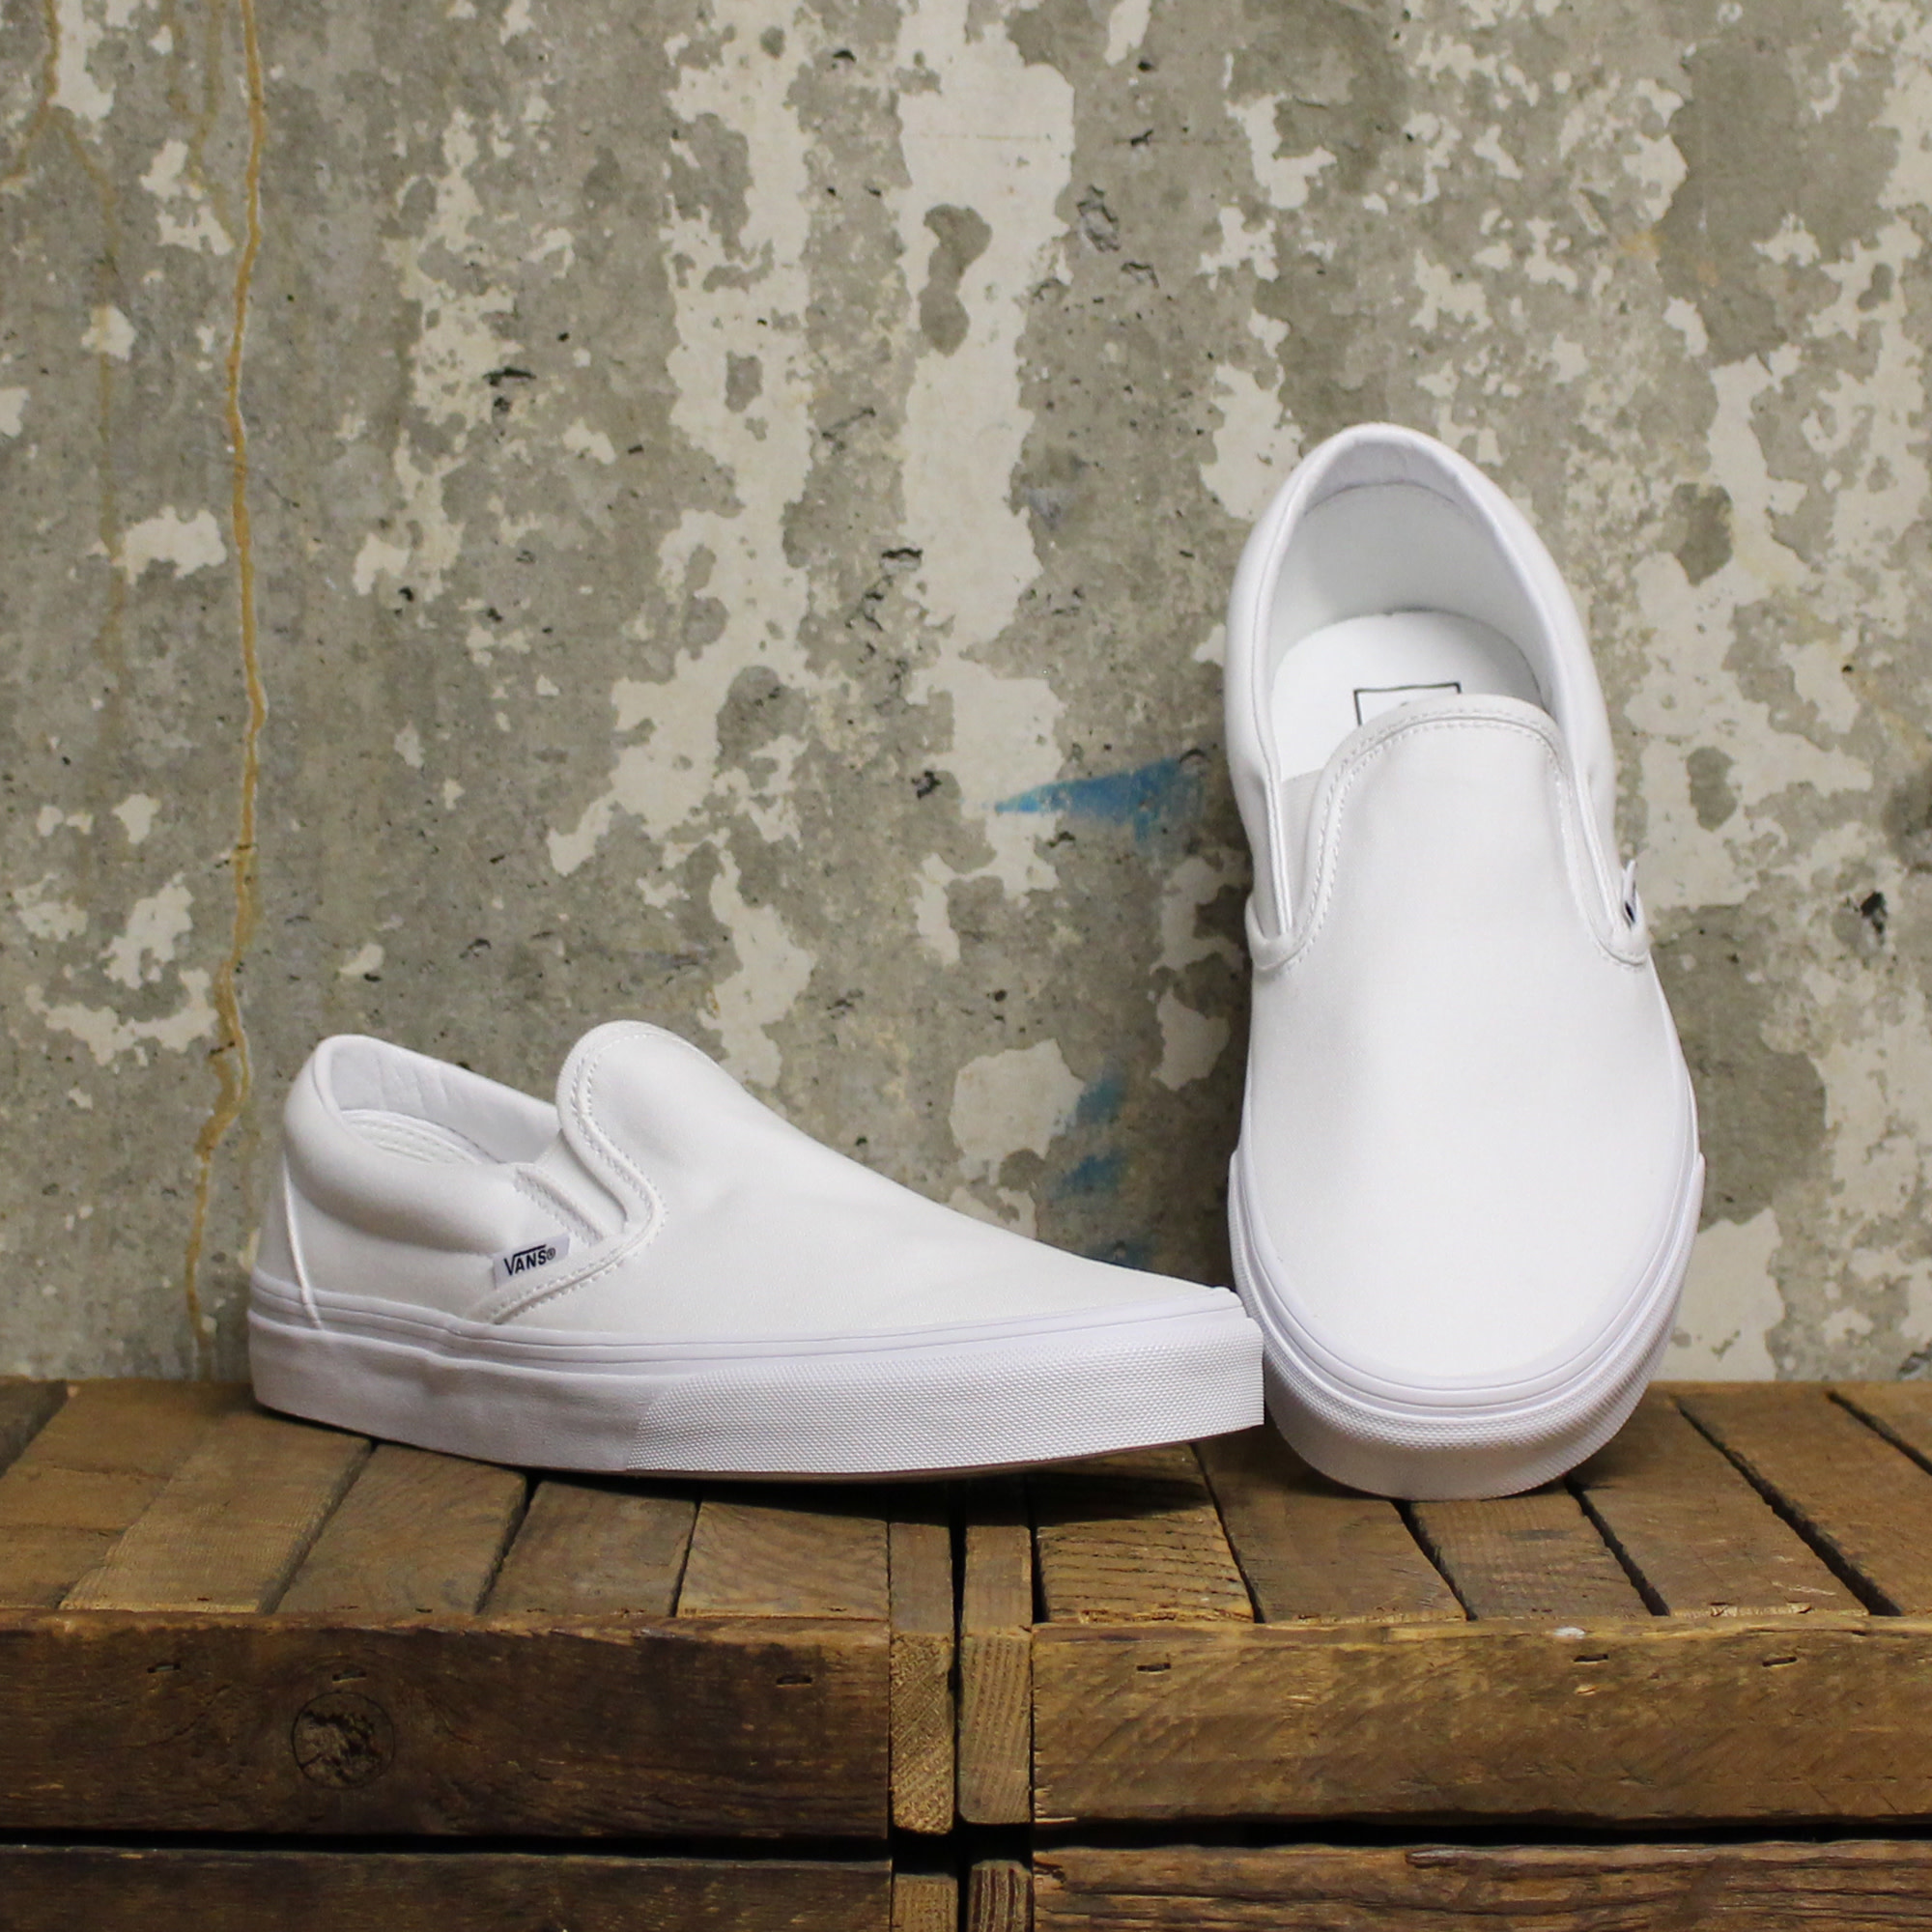 Vans Vans Classic Slip-On - True White